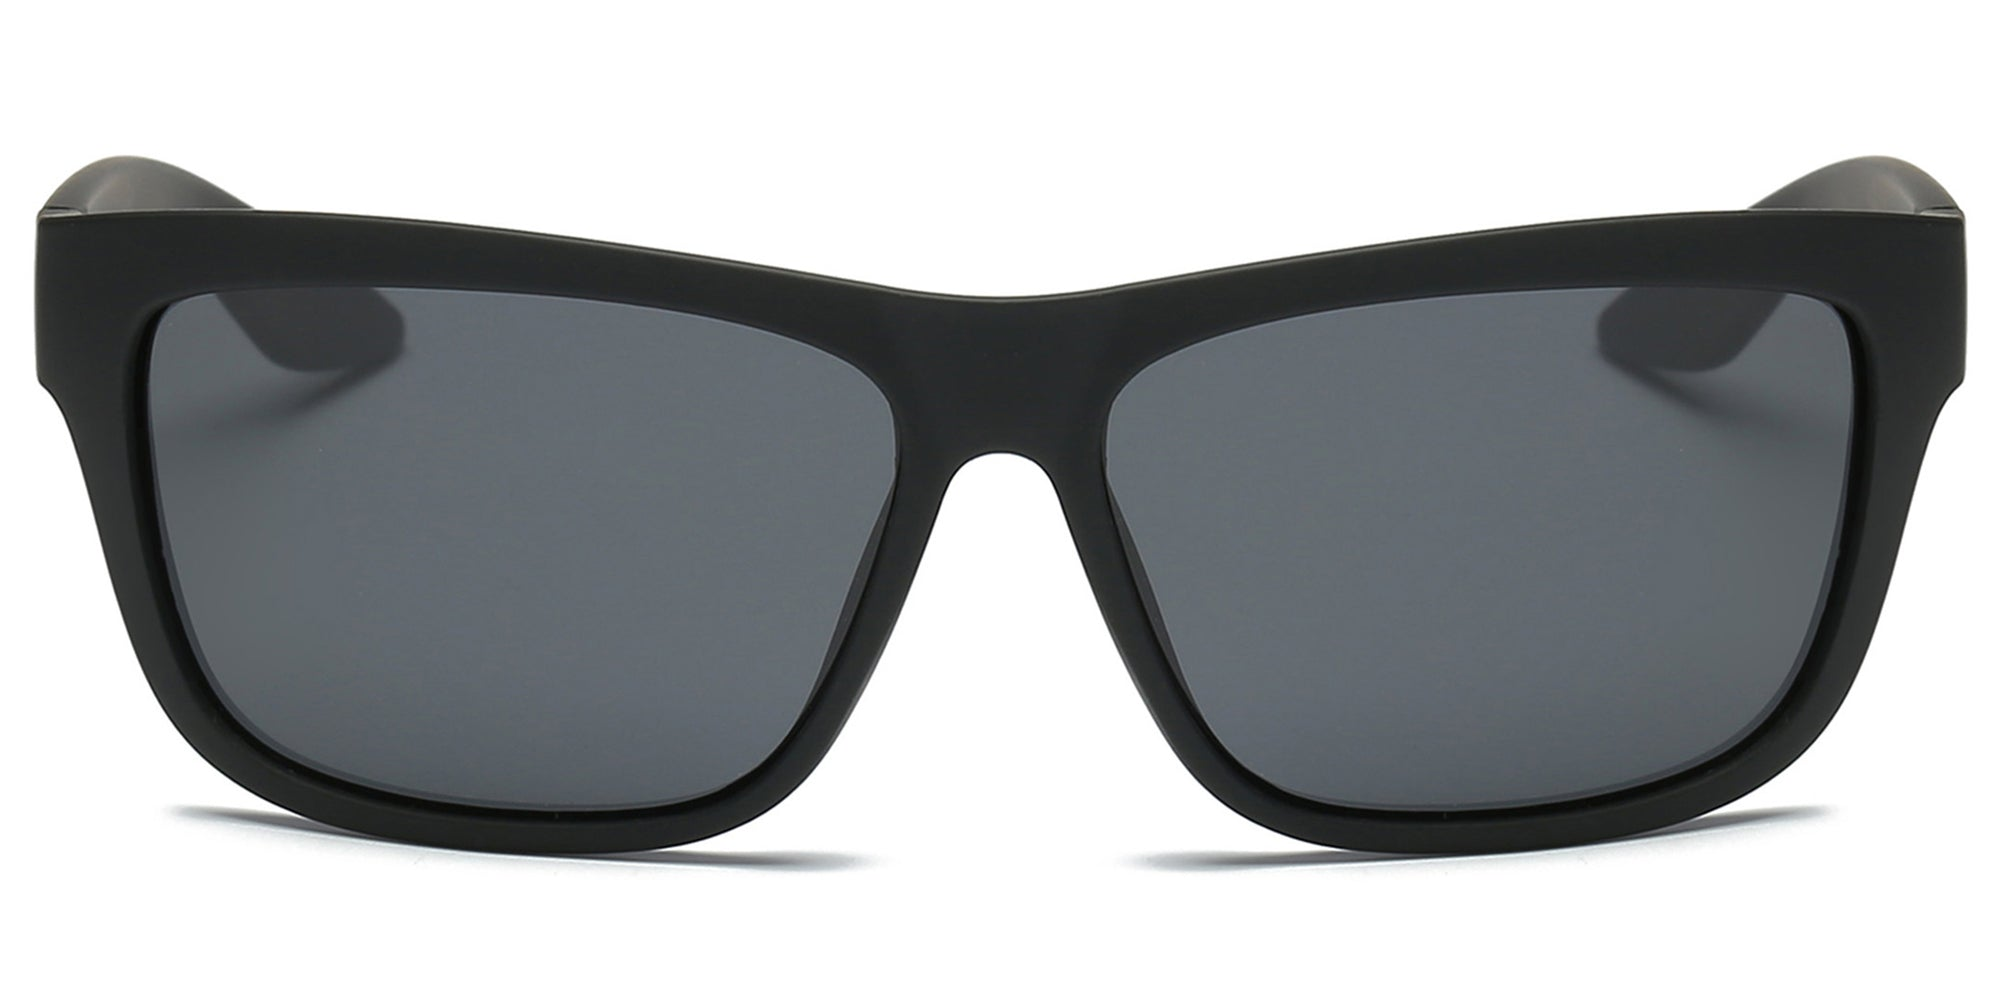 P1009 - Retro Rectangle Polarized Sunglasses - Iris Fashion Inc. | Wholesale Sunglasses and Glasses